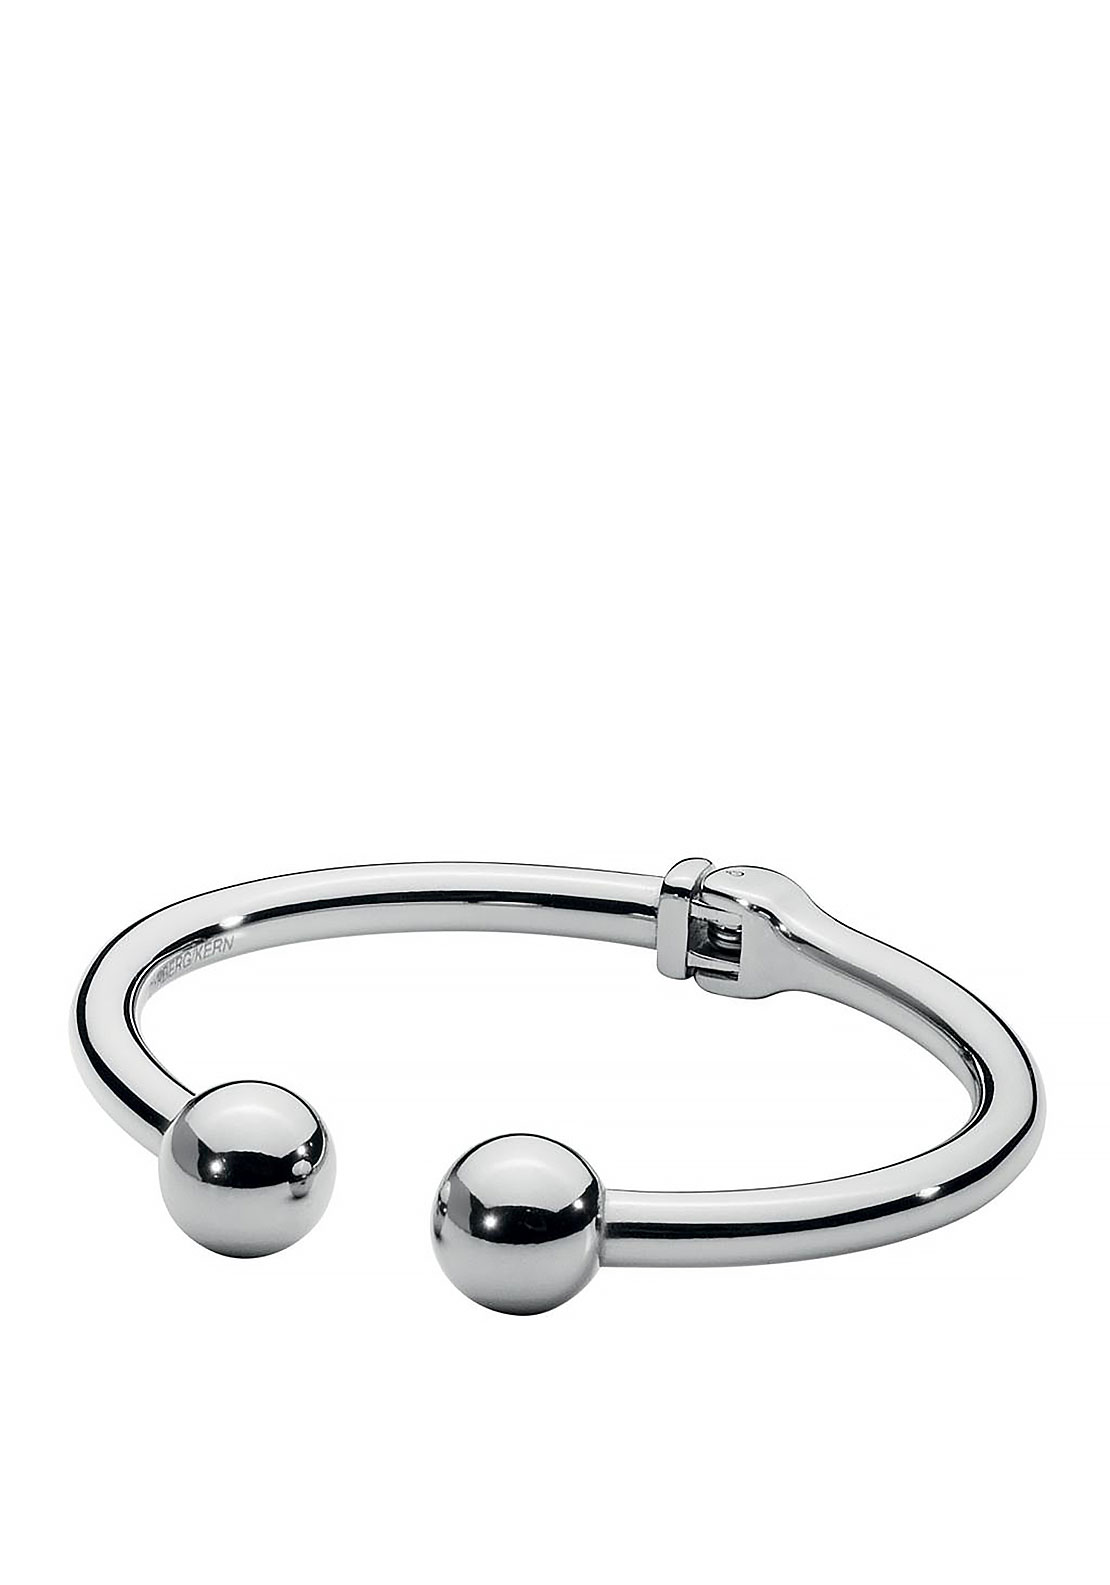 Dyrberg Kern Twiggy Bangle, Silver